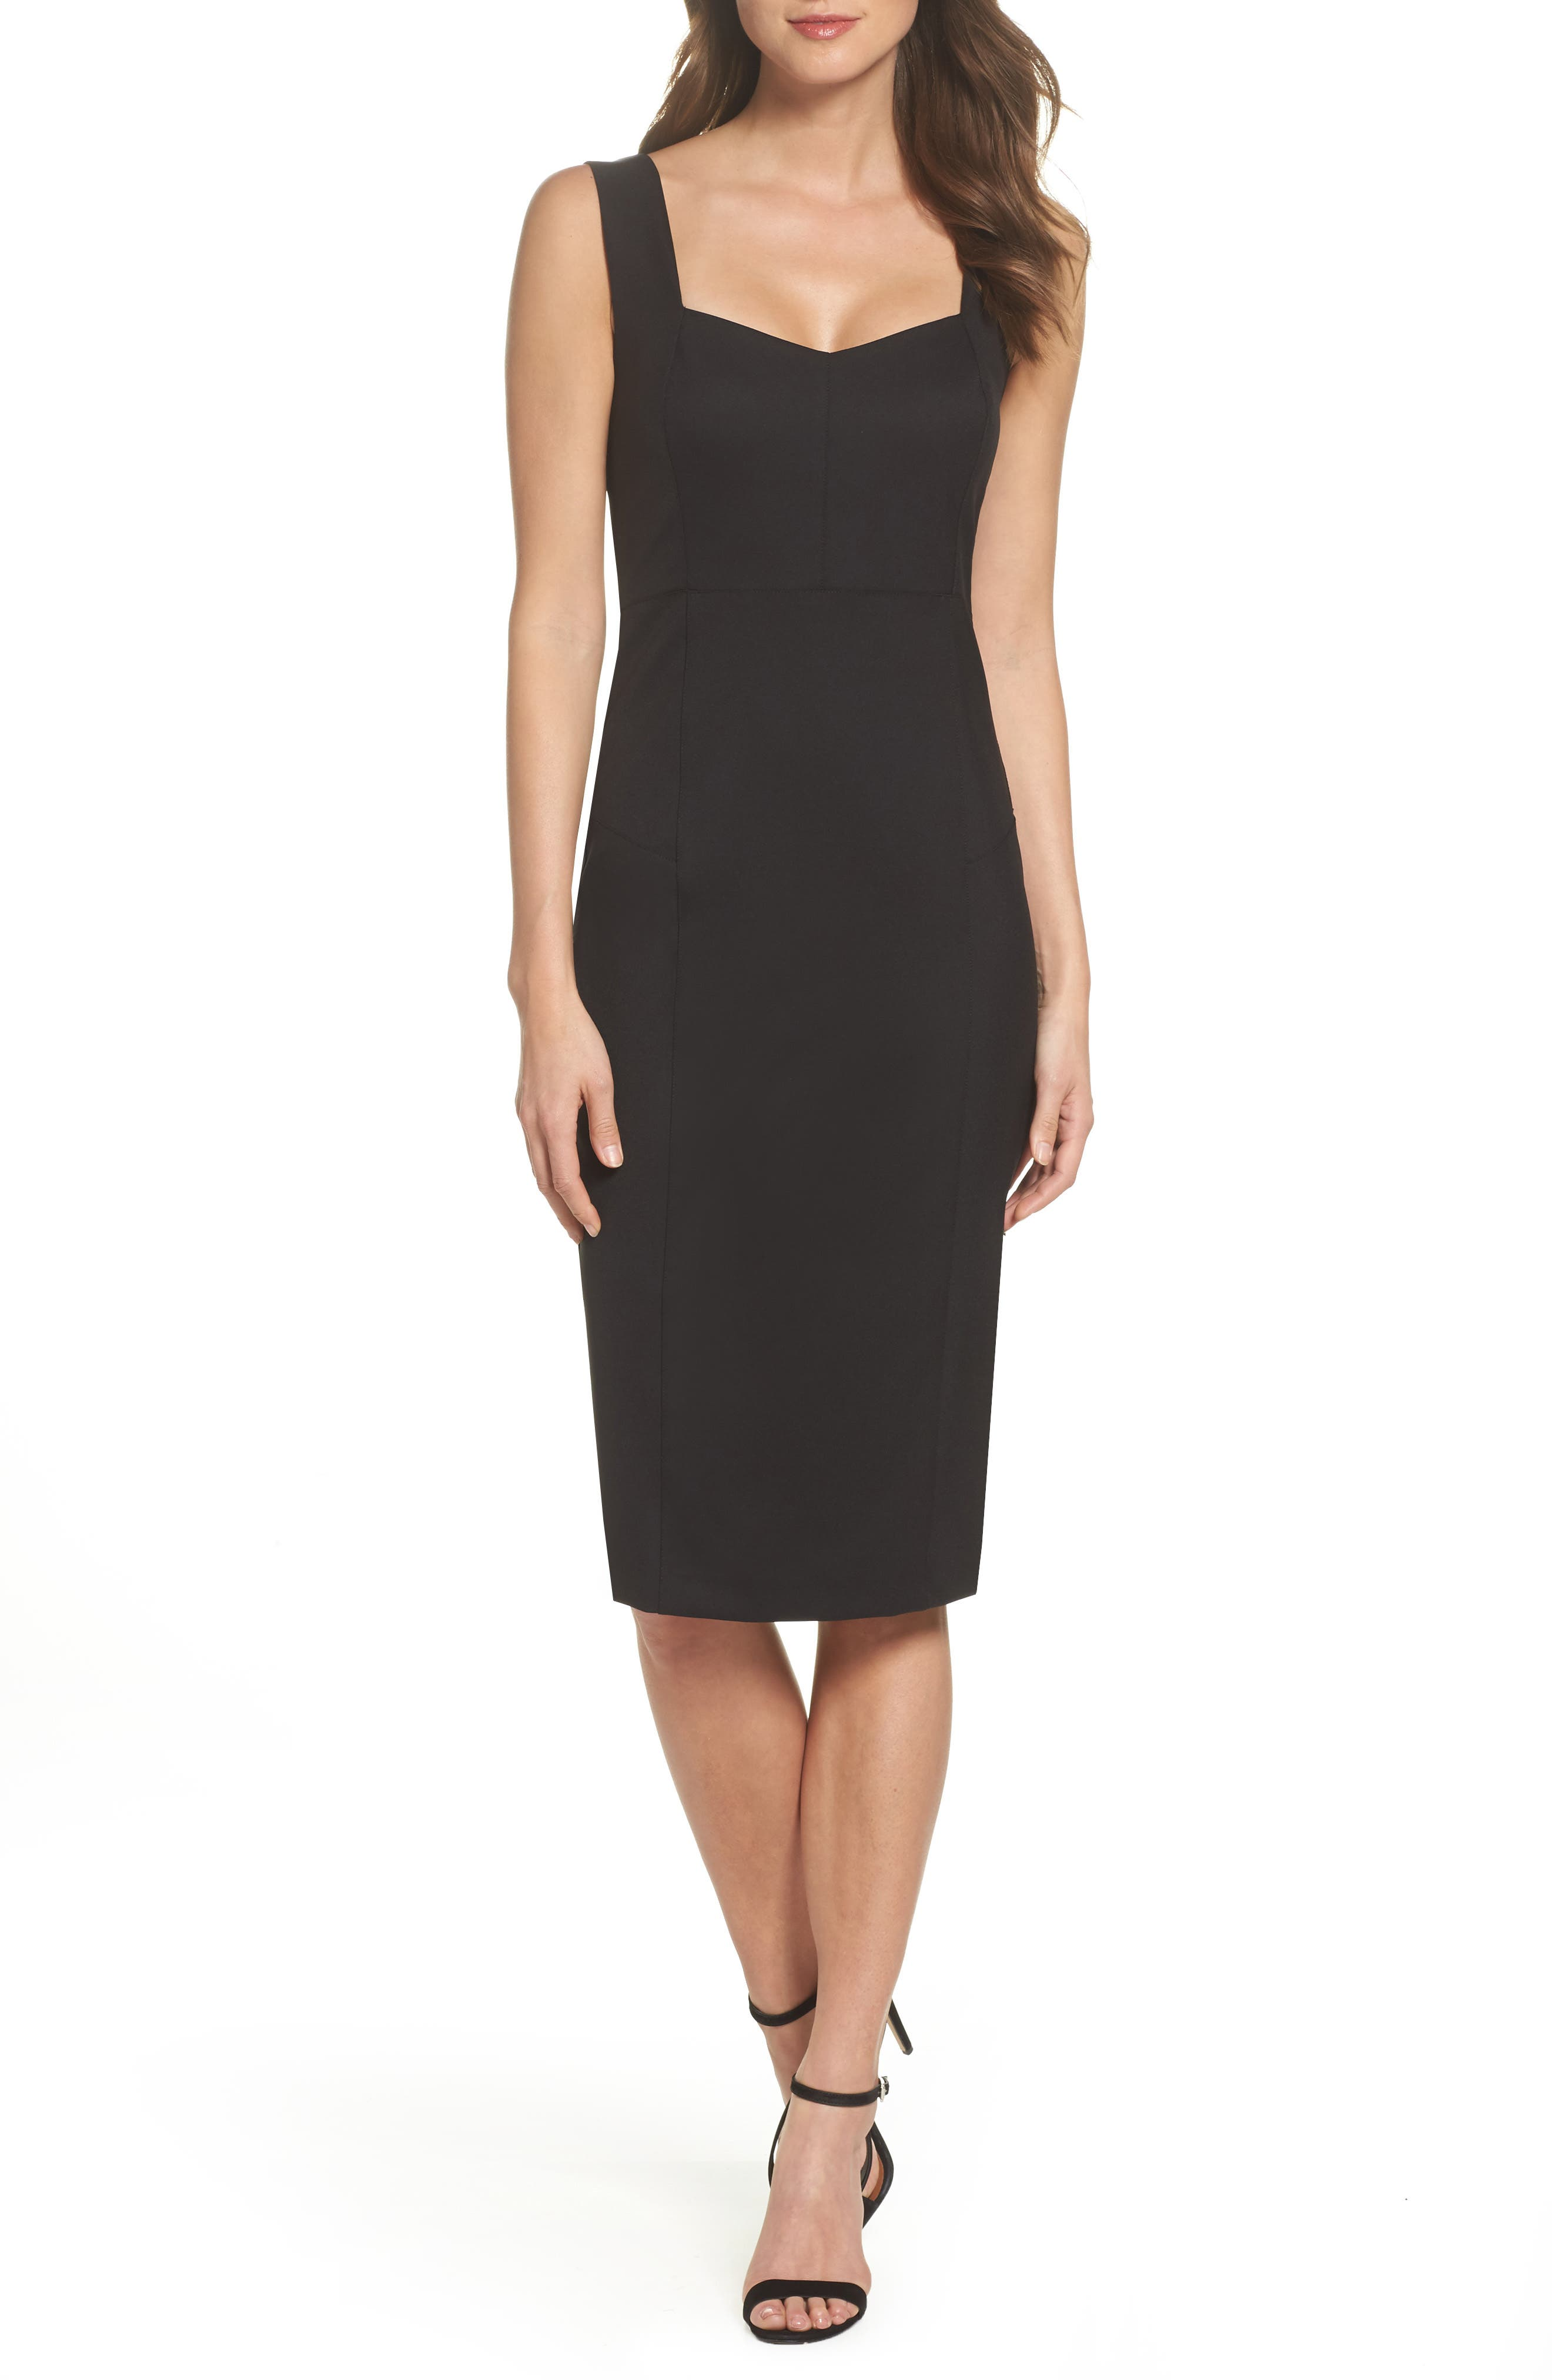 FELICITY & COCO,                             Mirren Midi Body-Con Dress,                             Main thumbnail 1, color,                             001